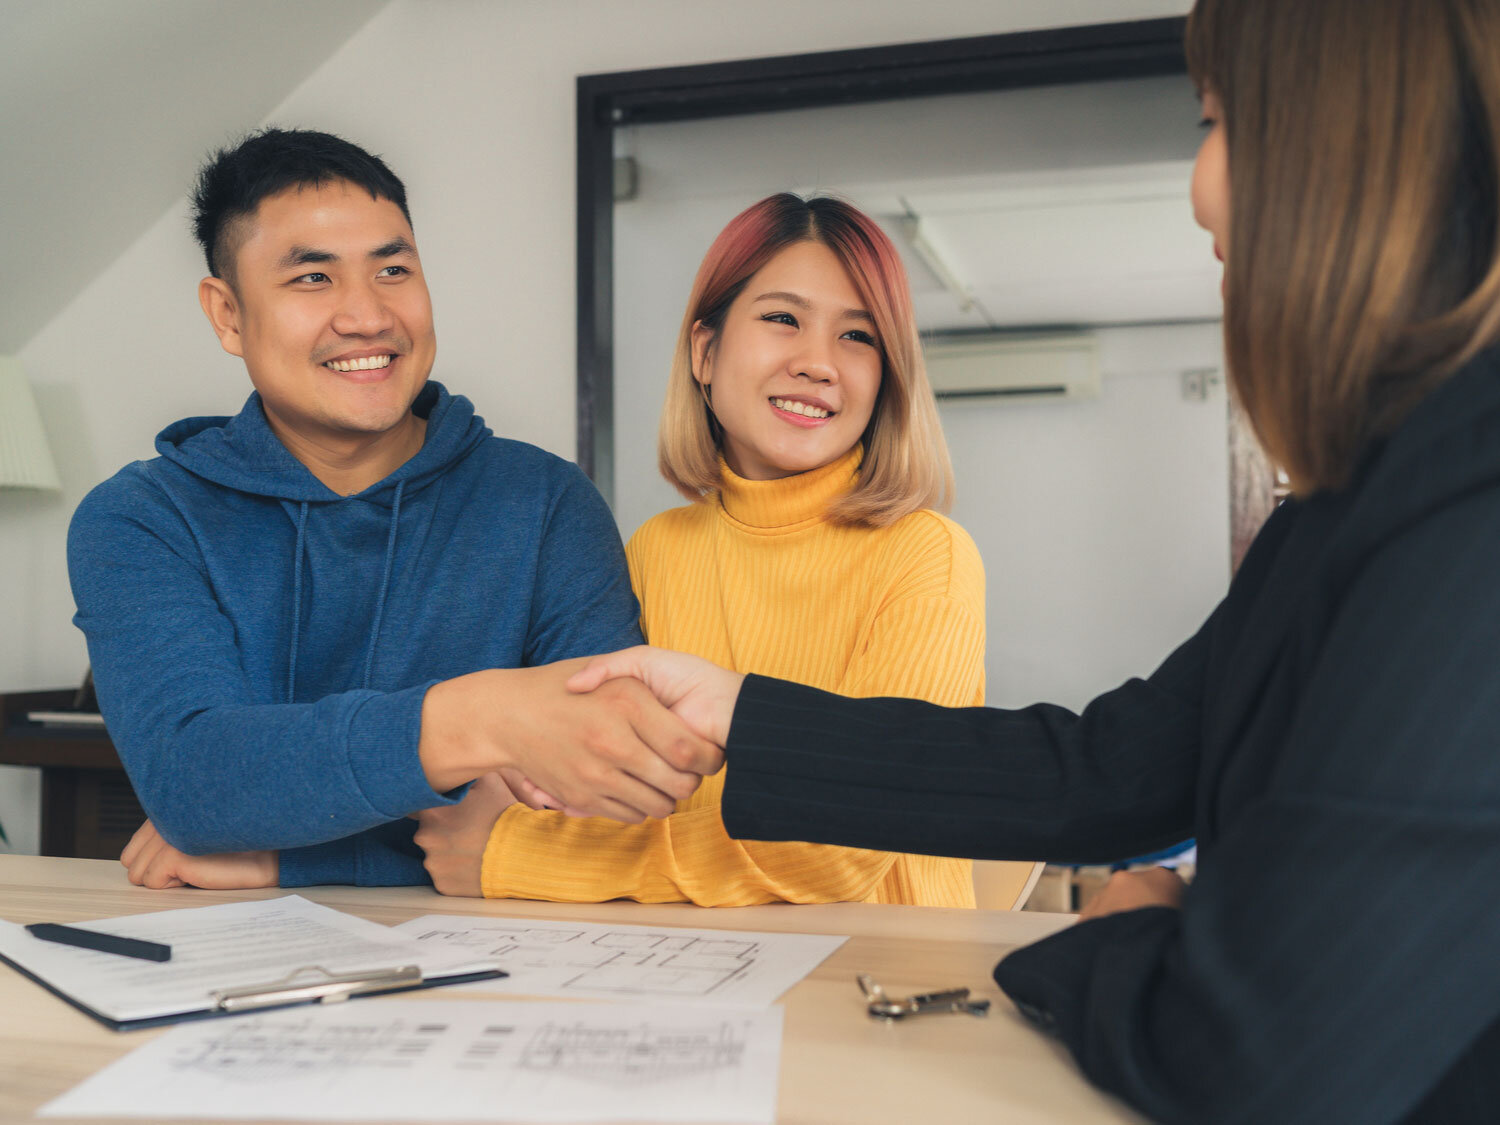 When buying a home, you need to put at least 3% down at closing. However, should you only put a minimum down payment? We'll help you determine what you should do in our latest article.